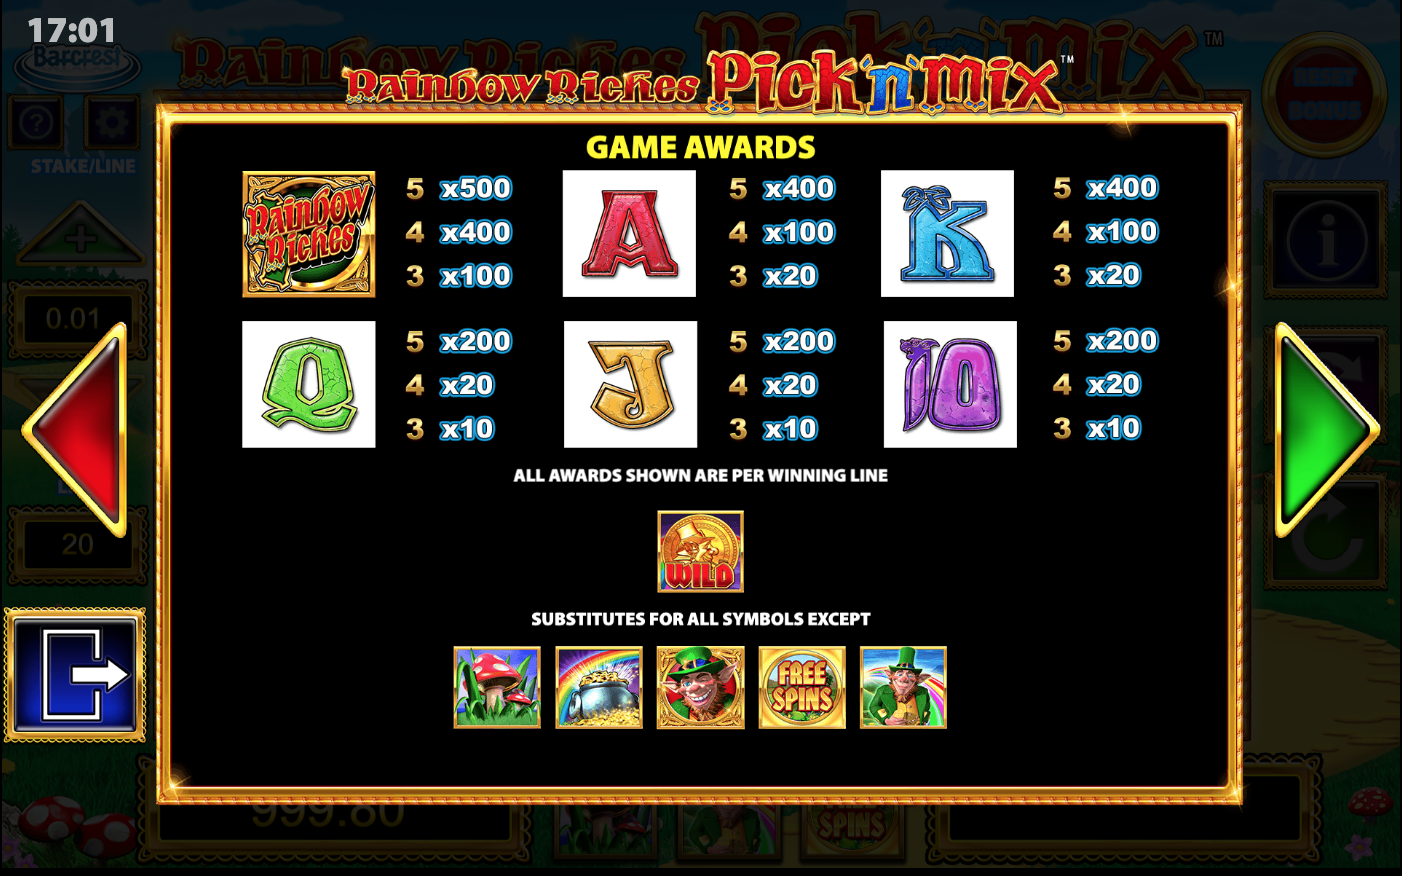 Rainbow Riches Pick'n'Mix full paytable